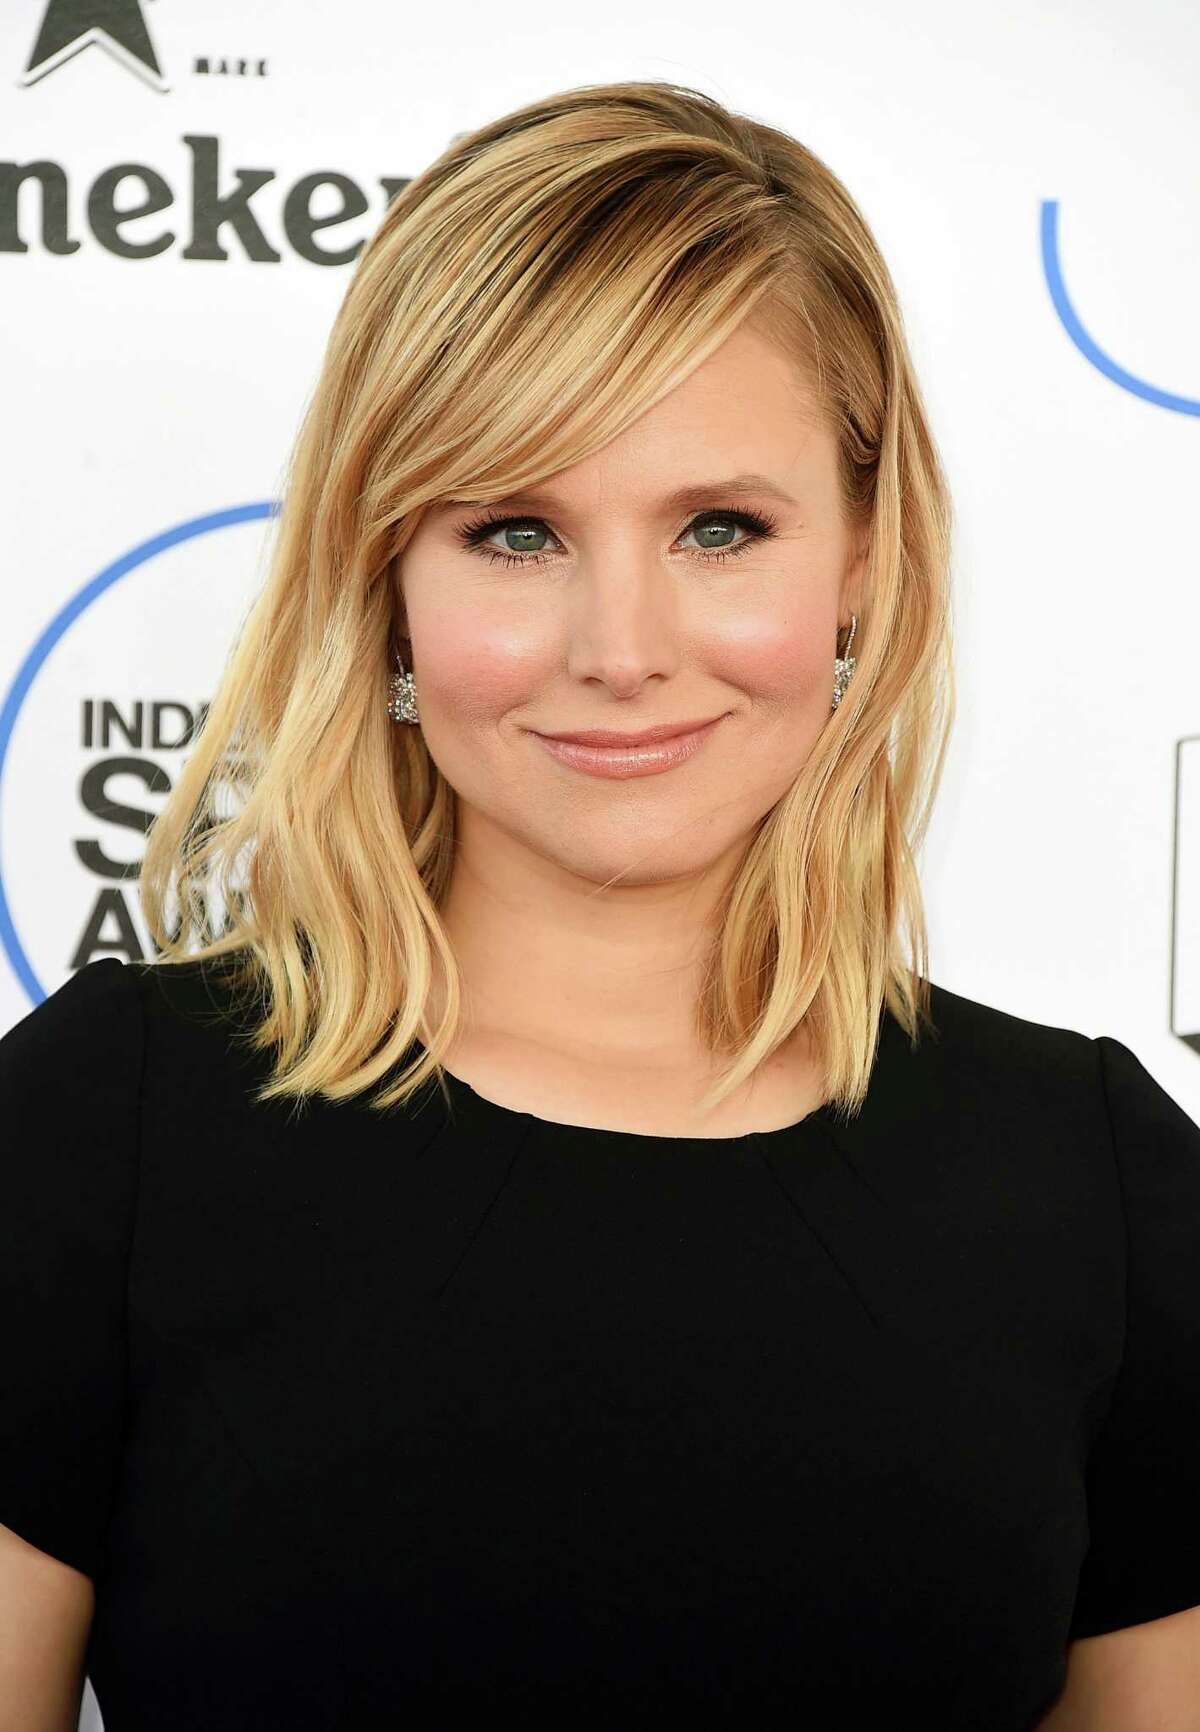 In this Feb. 21, 2015, file photo, Kristen Bell arrives at the 30th Film Independent Spirit Awards in Santa Monica, Calif. The Entertainment Industry Foundation said Tuesday, Aug. 18, that ABC, CBS, Fox and NBC will simultaneously air a one-hour fundraising special for education featuring Bell, Stephen Colbert, Scarlett Johansson, Matthew McConaughey and Gwyneth Paltrow on Sept. 11. The special will have sketches and musical performances.